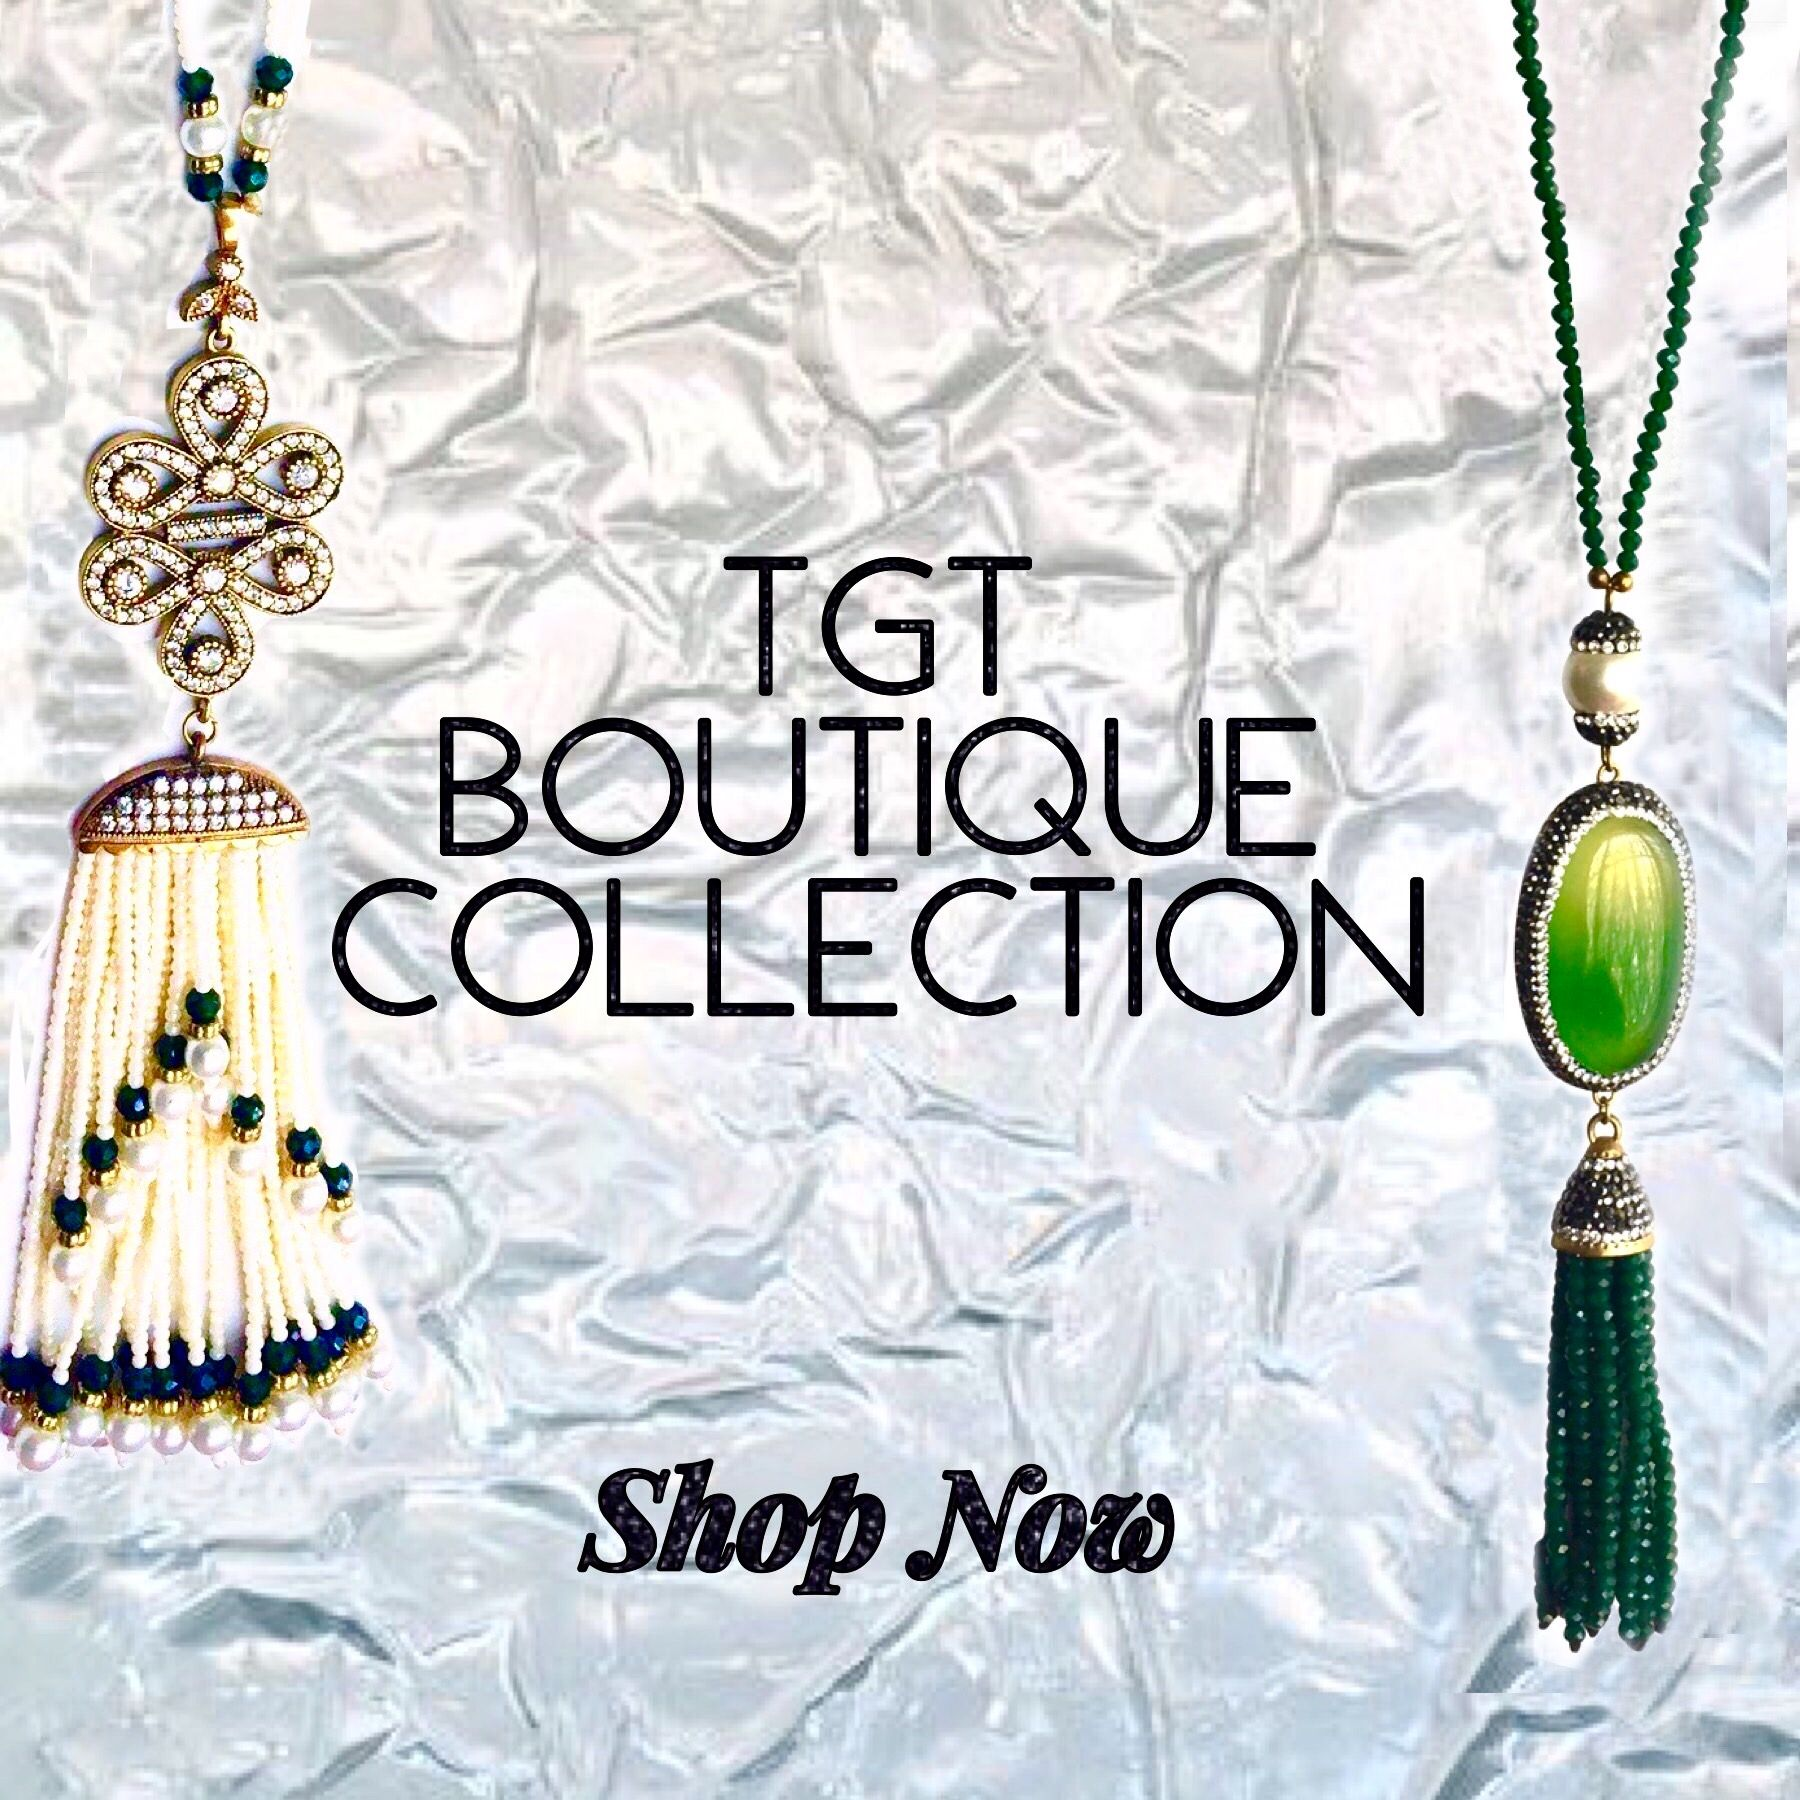 #TheGlocalTrunk launches a new #luxuryrange 'TGT Boutique Collection' with #highquality #naturalstones #semipreciousgems, 18k gold plated metal etc #paved to make every #occasion special. #shopnow https://www.theglocaltrunk.com/collections/tgt-boutique-collection #newlaunch #highend #tgtlaunches #jewelleryonline #livenow #availablenow